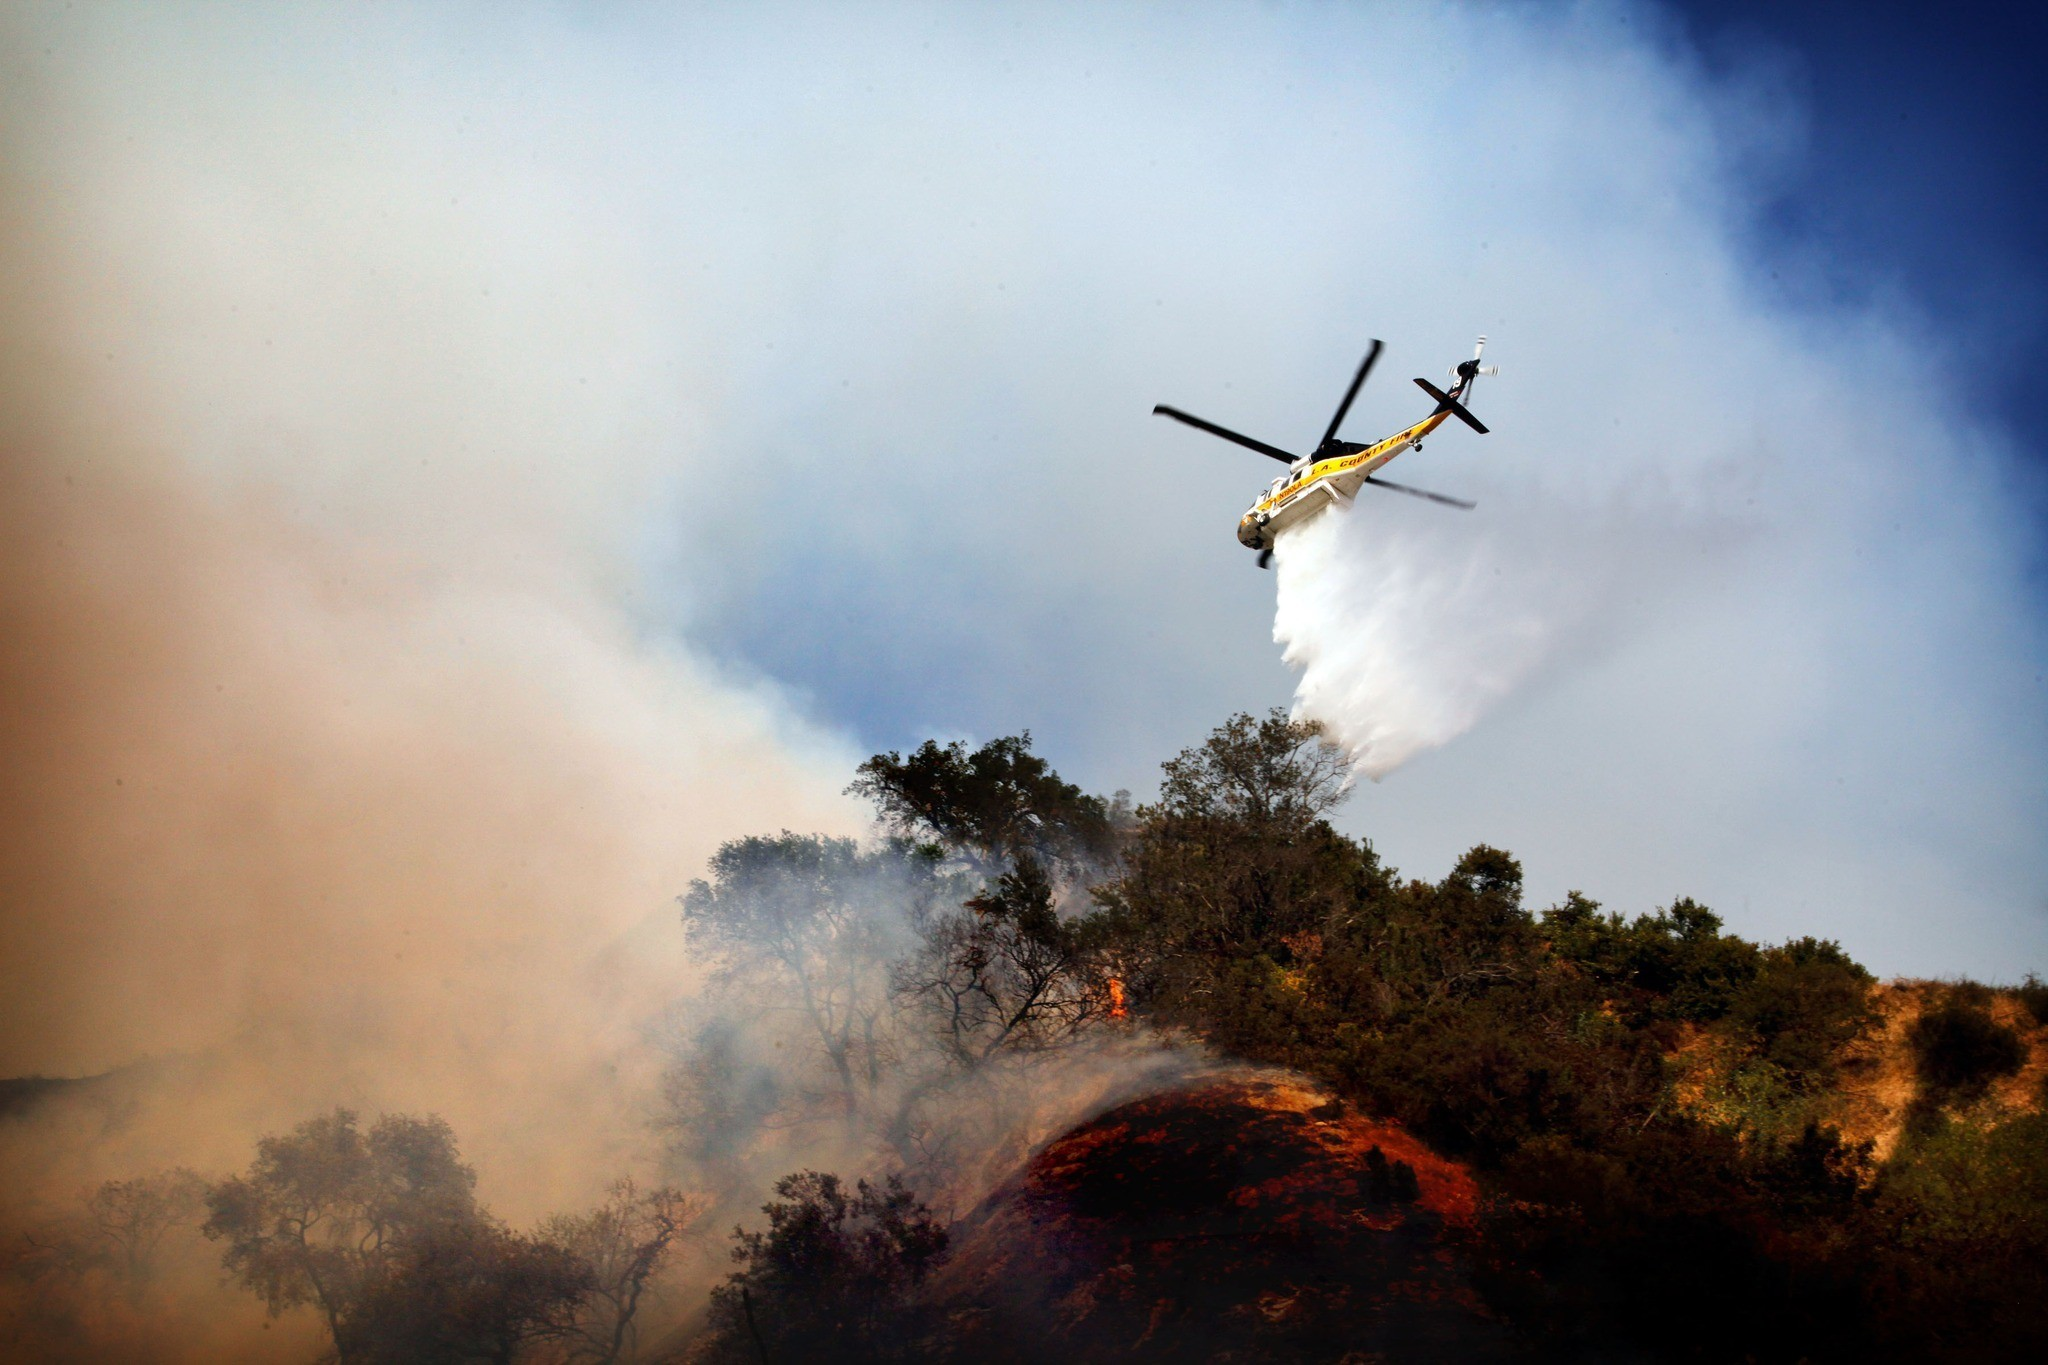 Fire in Monrovia - A helicopter drops water